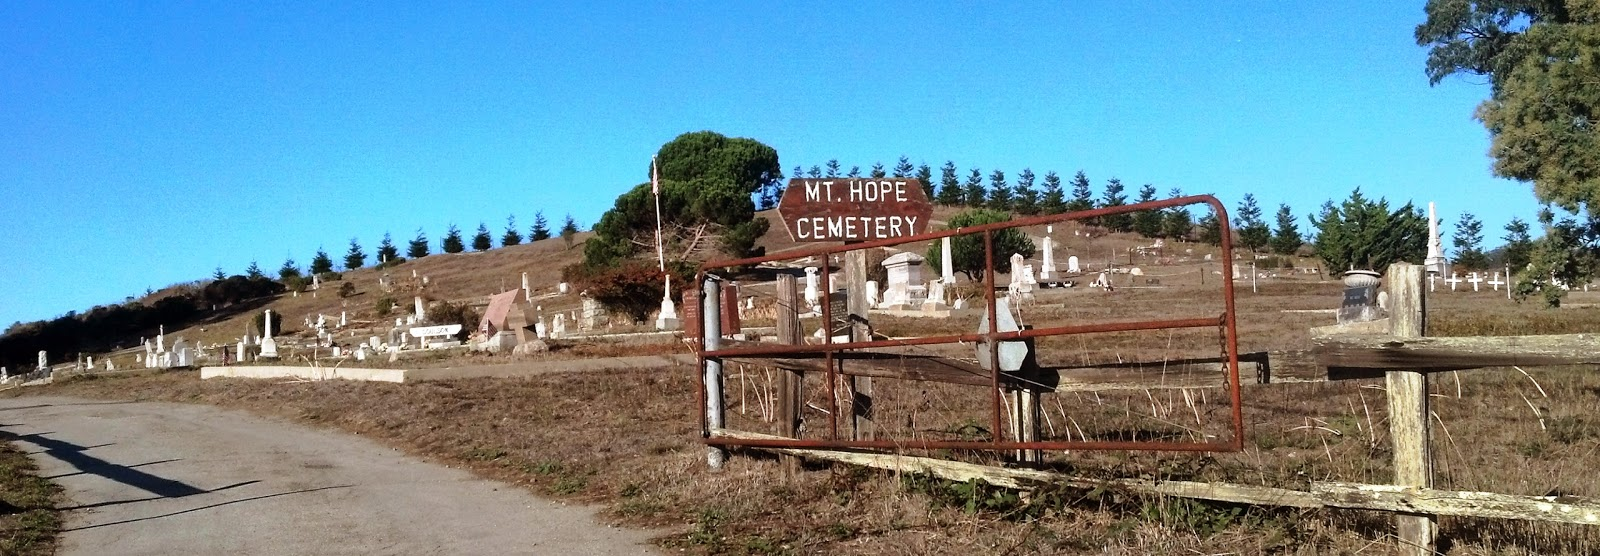 California san mateo county pescadero - Right Next Door To St Anthony S In Pescadero Is Mount Hope Cemetery Like St Anthony S It Is A Rural Cemetery There Is No Lawn But The Cemetery Does Not